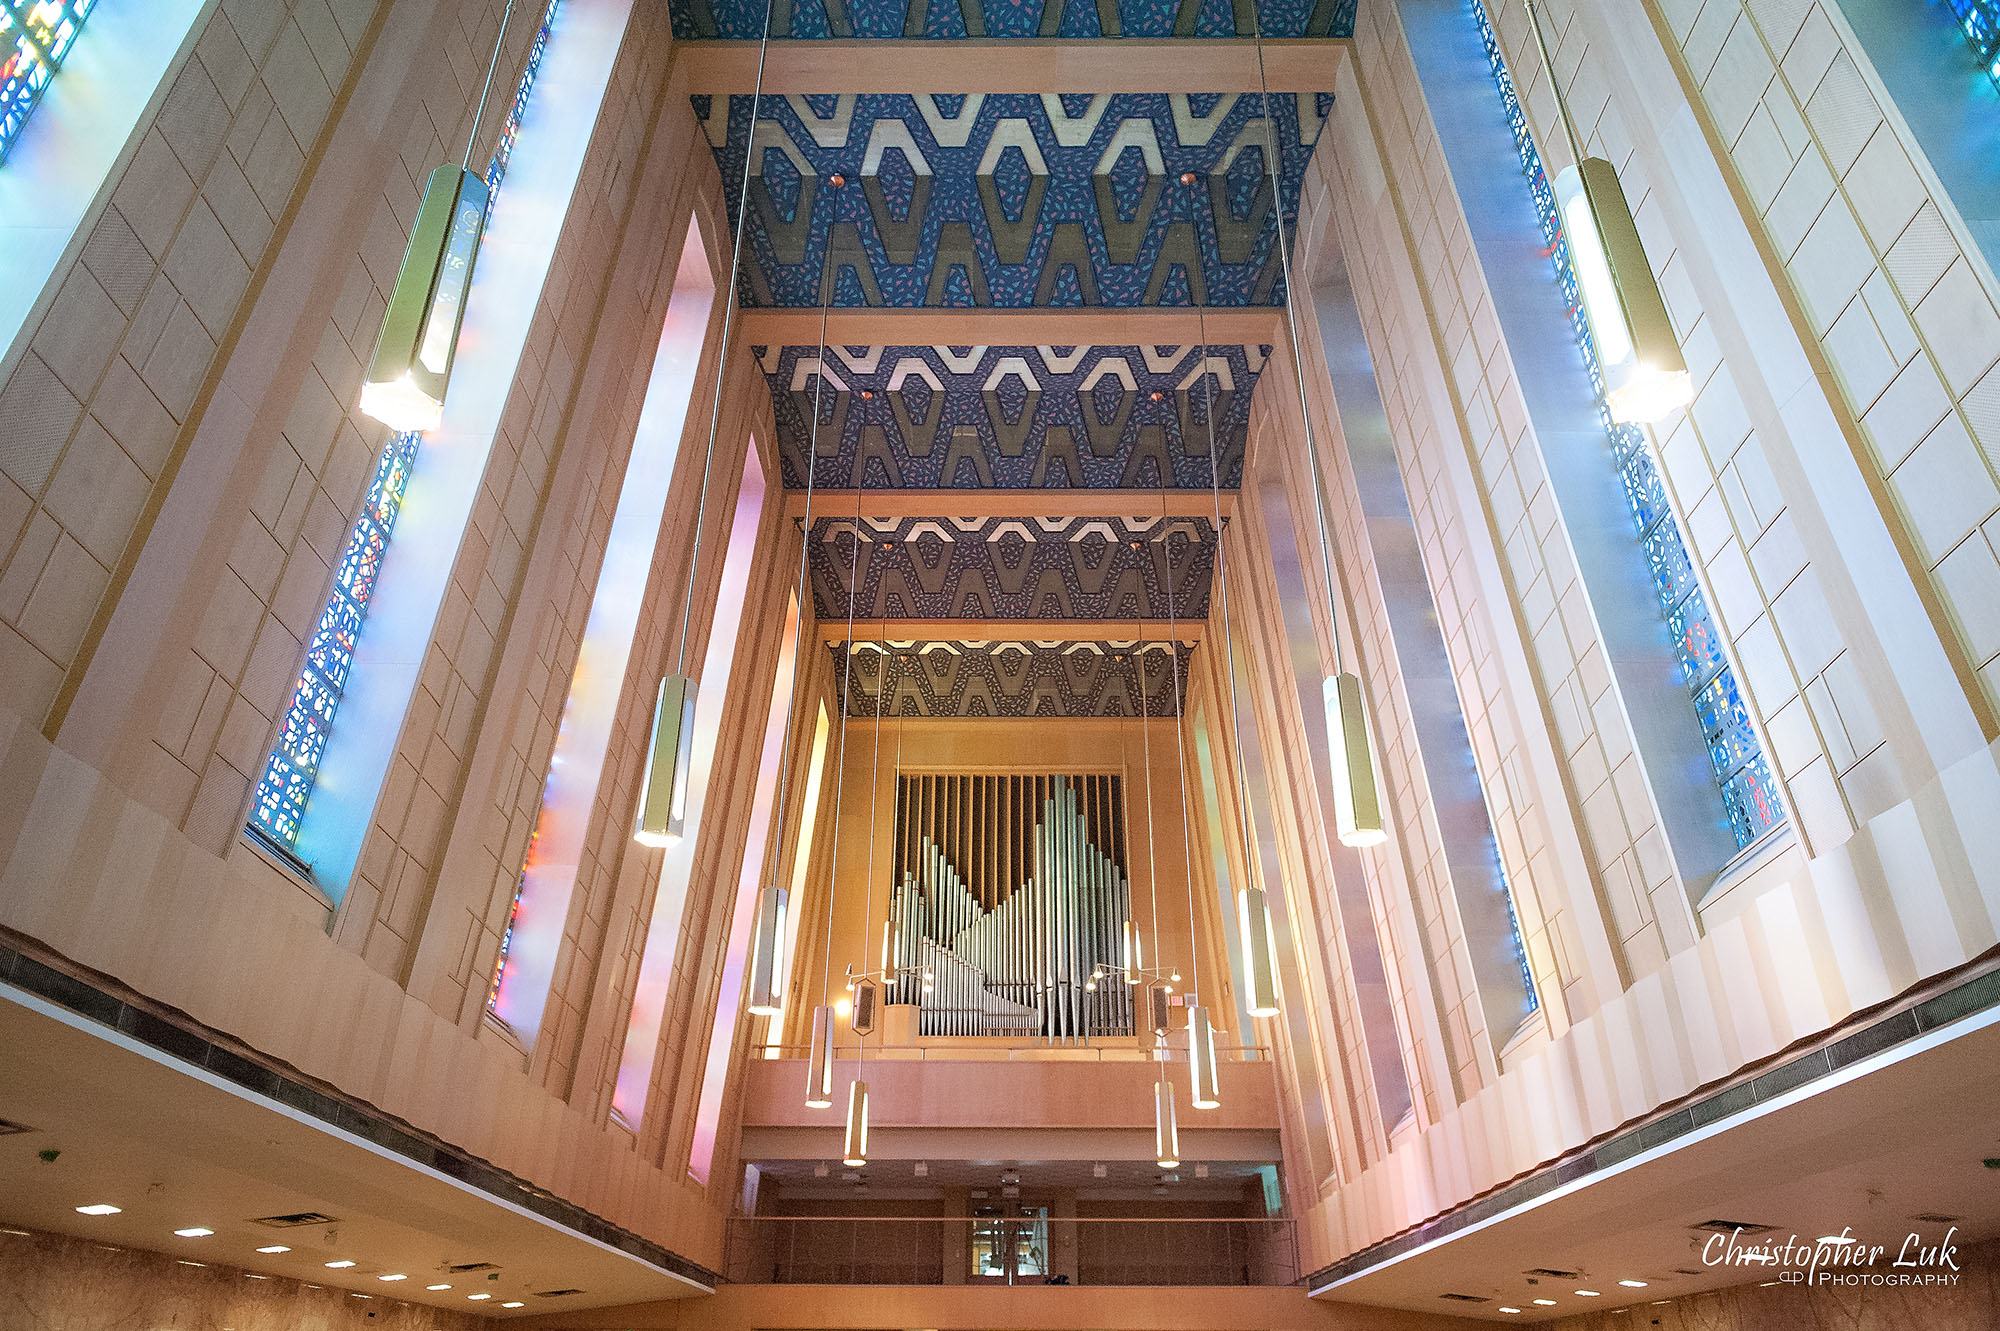 Christopher Luk Toronto Wedding Photography Tyndale Chapel Church Ceremony Venue Location Pipe Organ Ceiling Stained Glass Windows